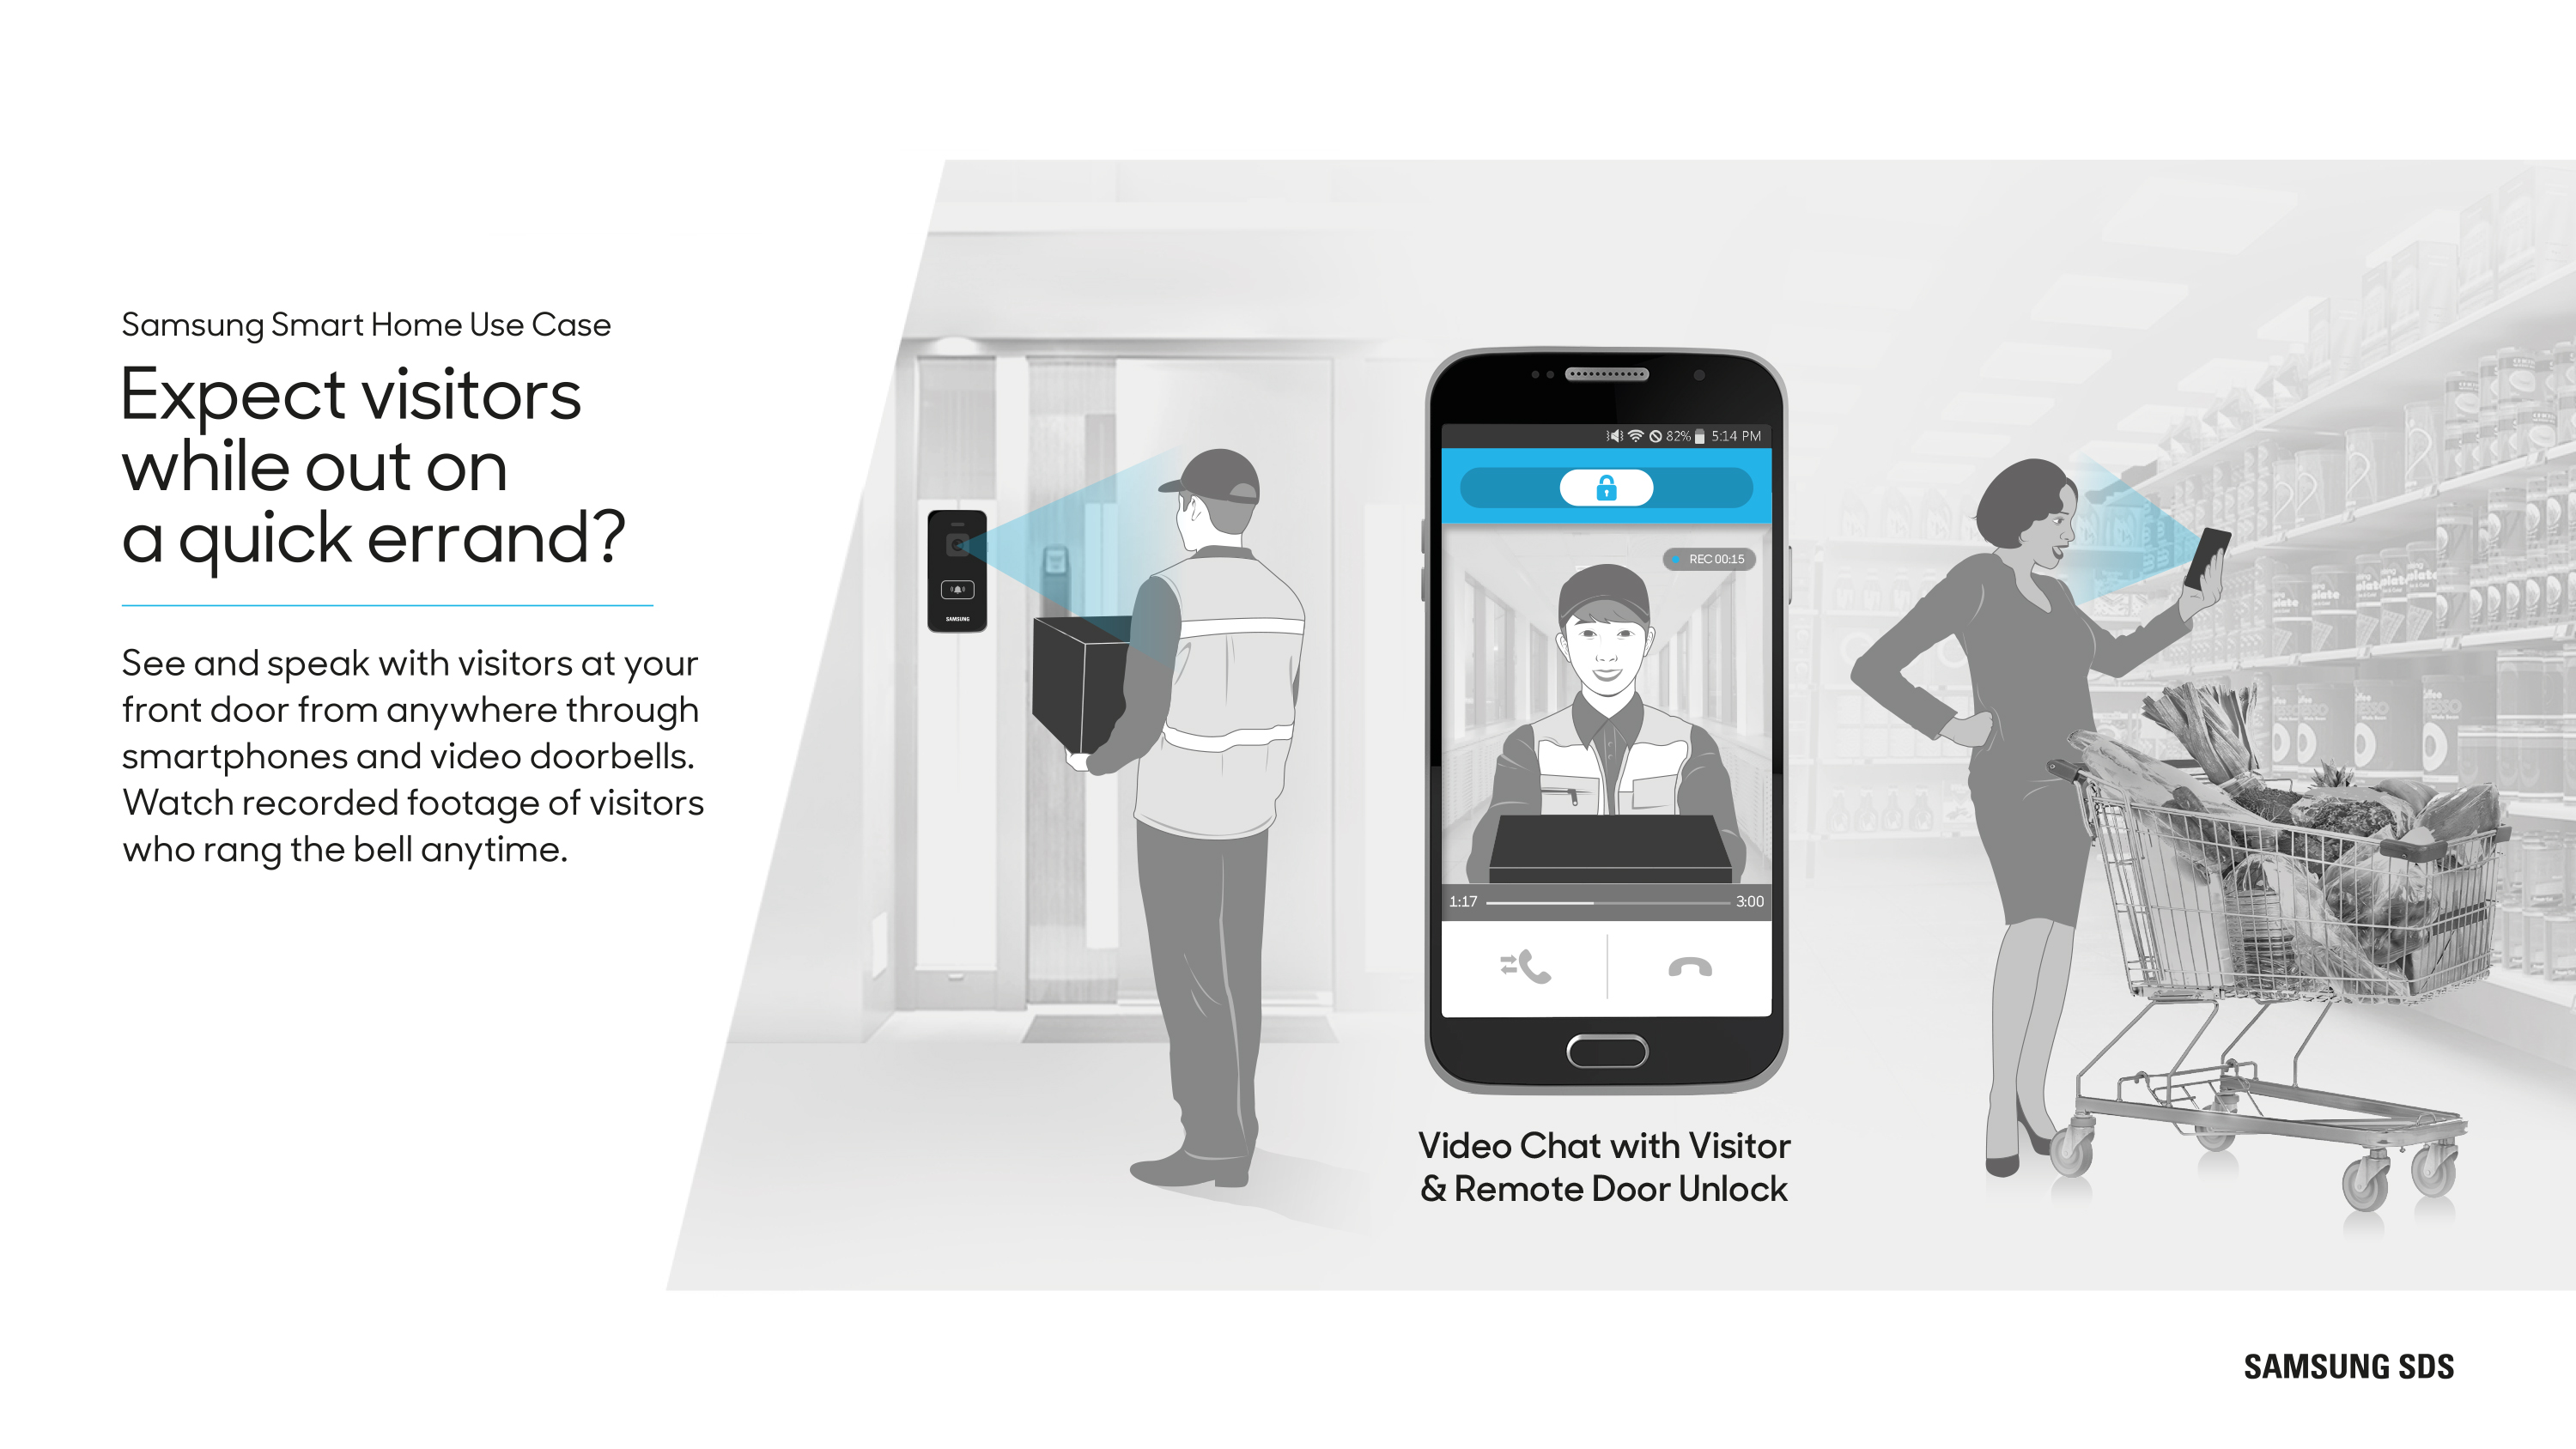 See and speak with visitors at your front door from anywhere through smartphones and video doorbells. Watch recorded footage of visitors who rang the bell anytime.